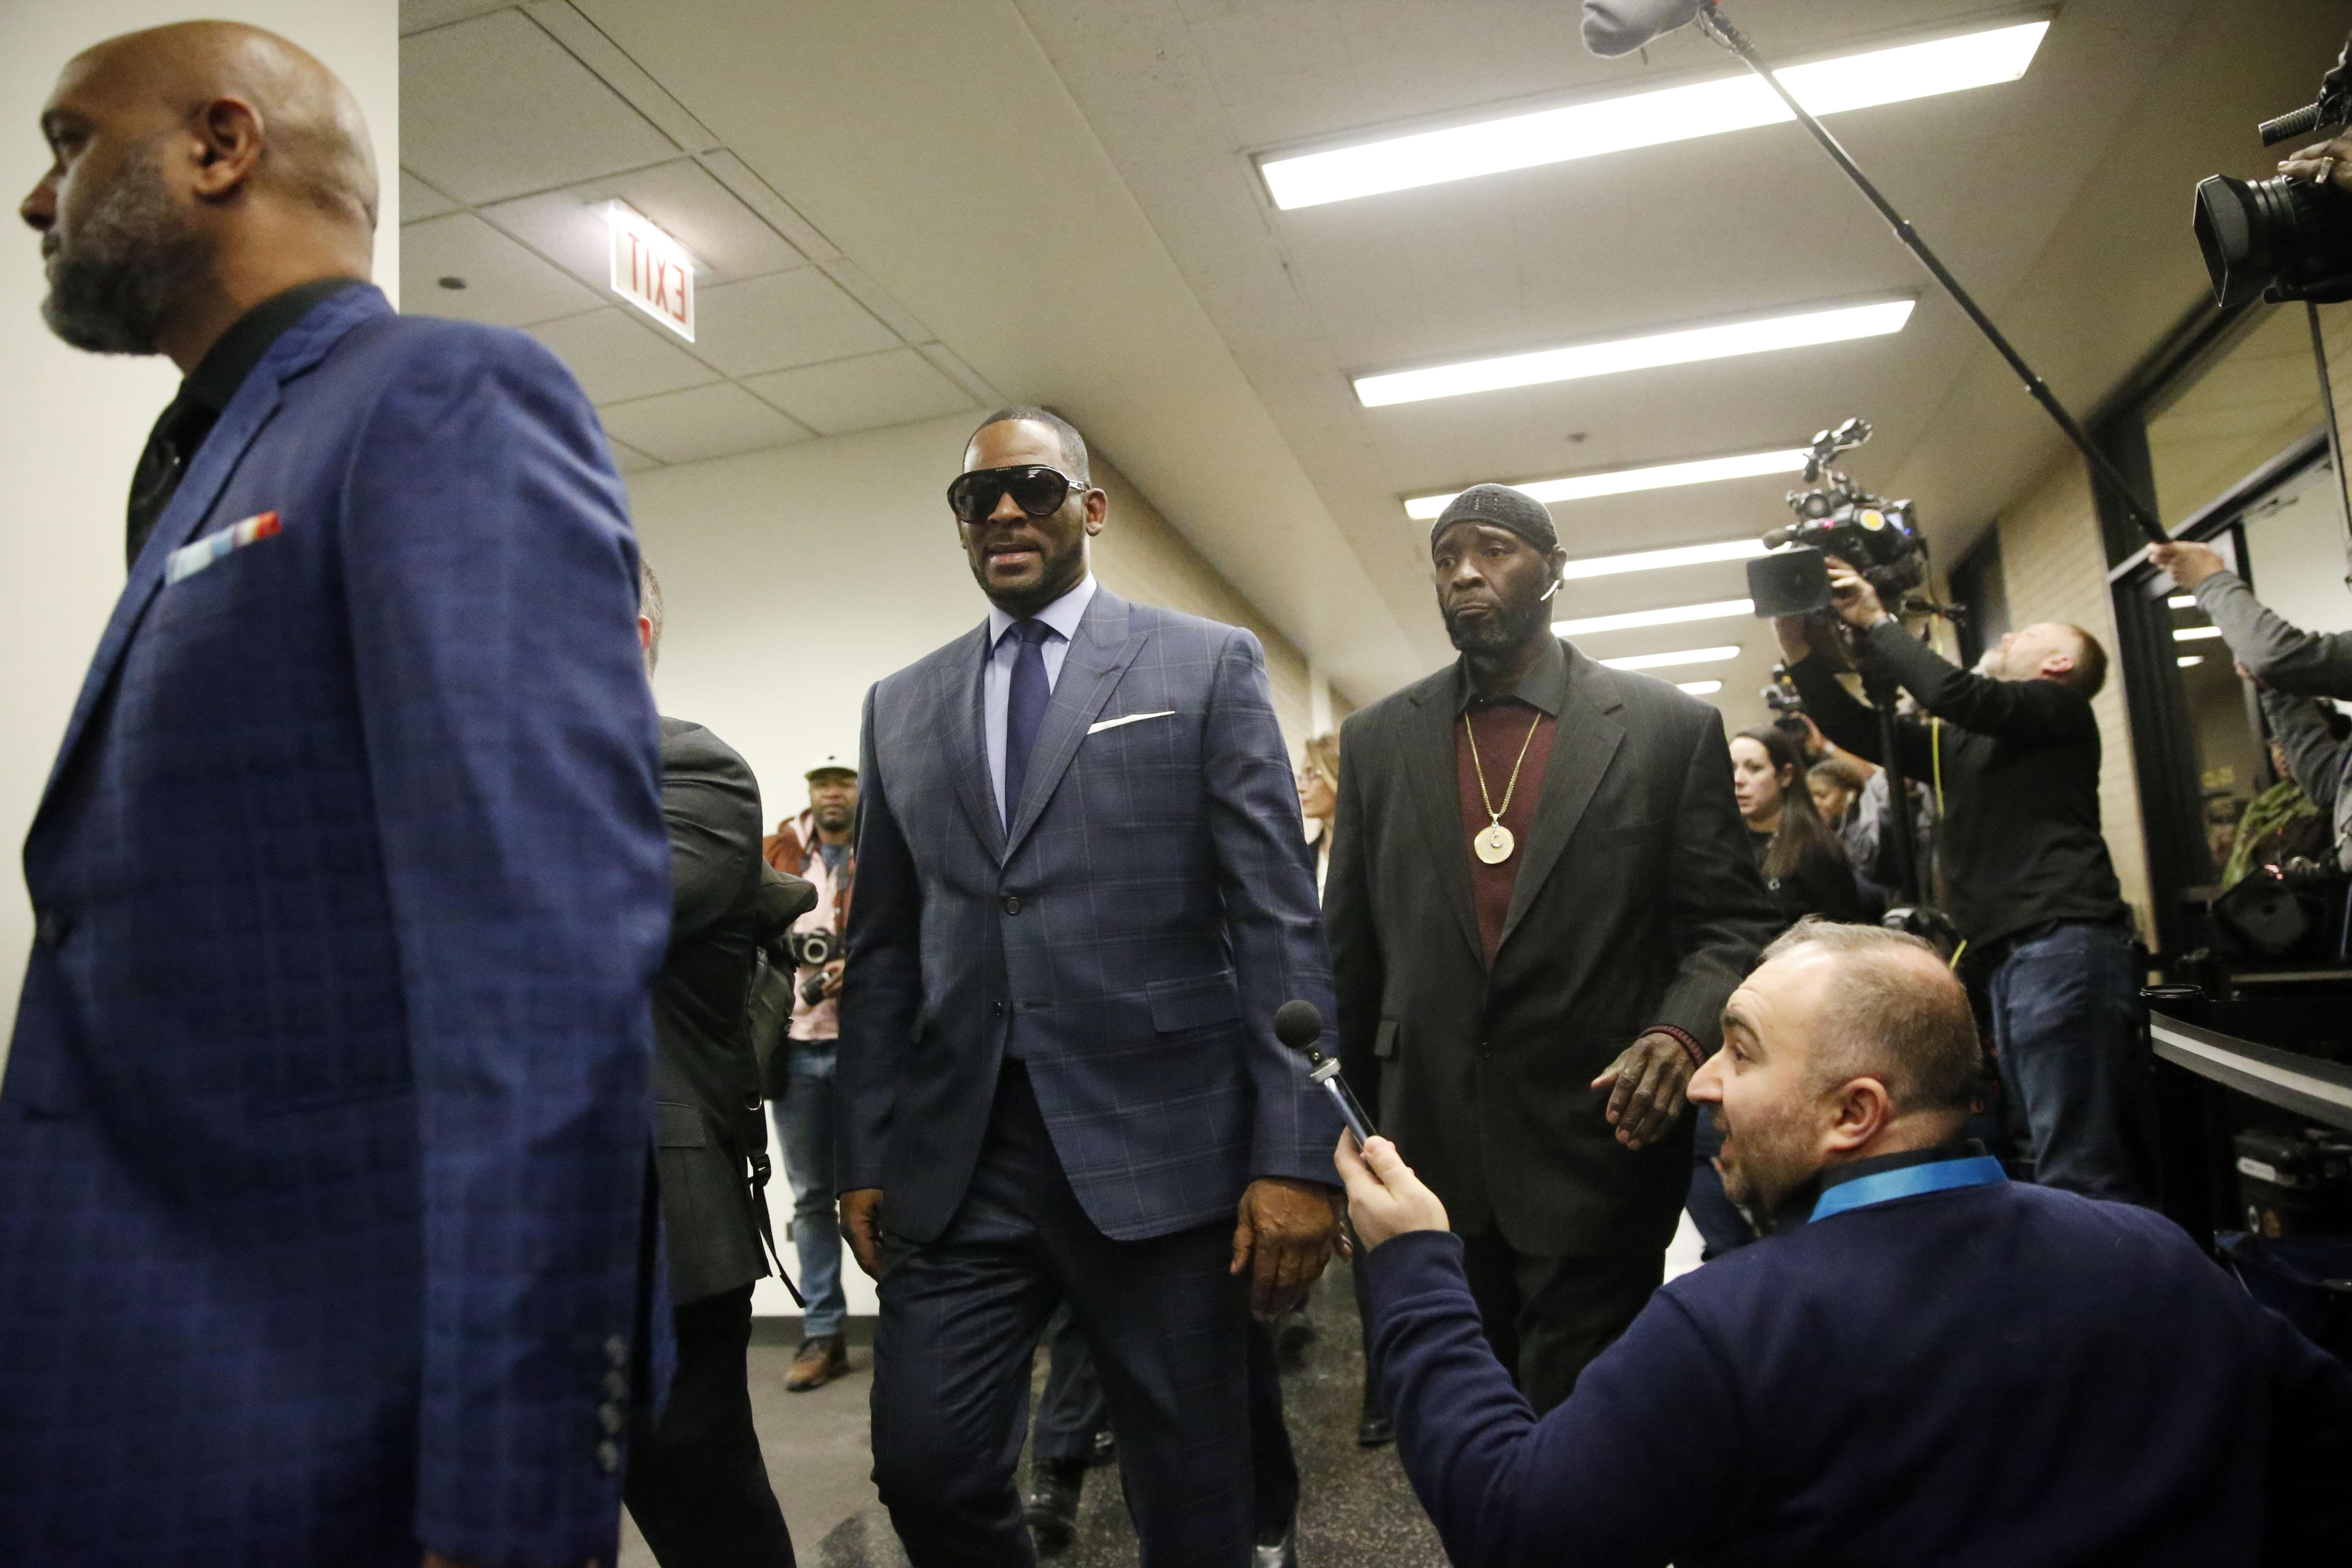 R Kelly Arrested For UNPAID Child Support